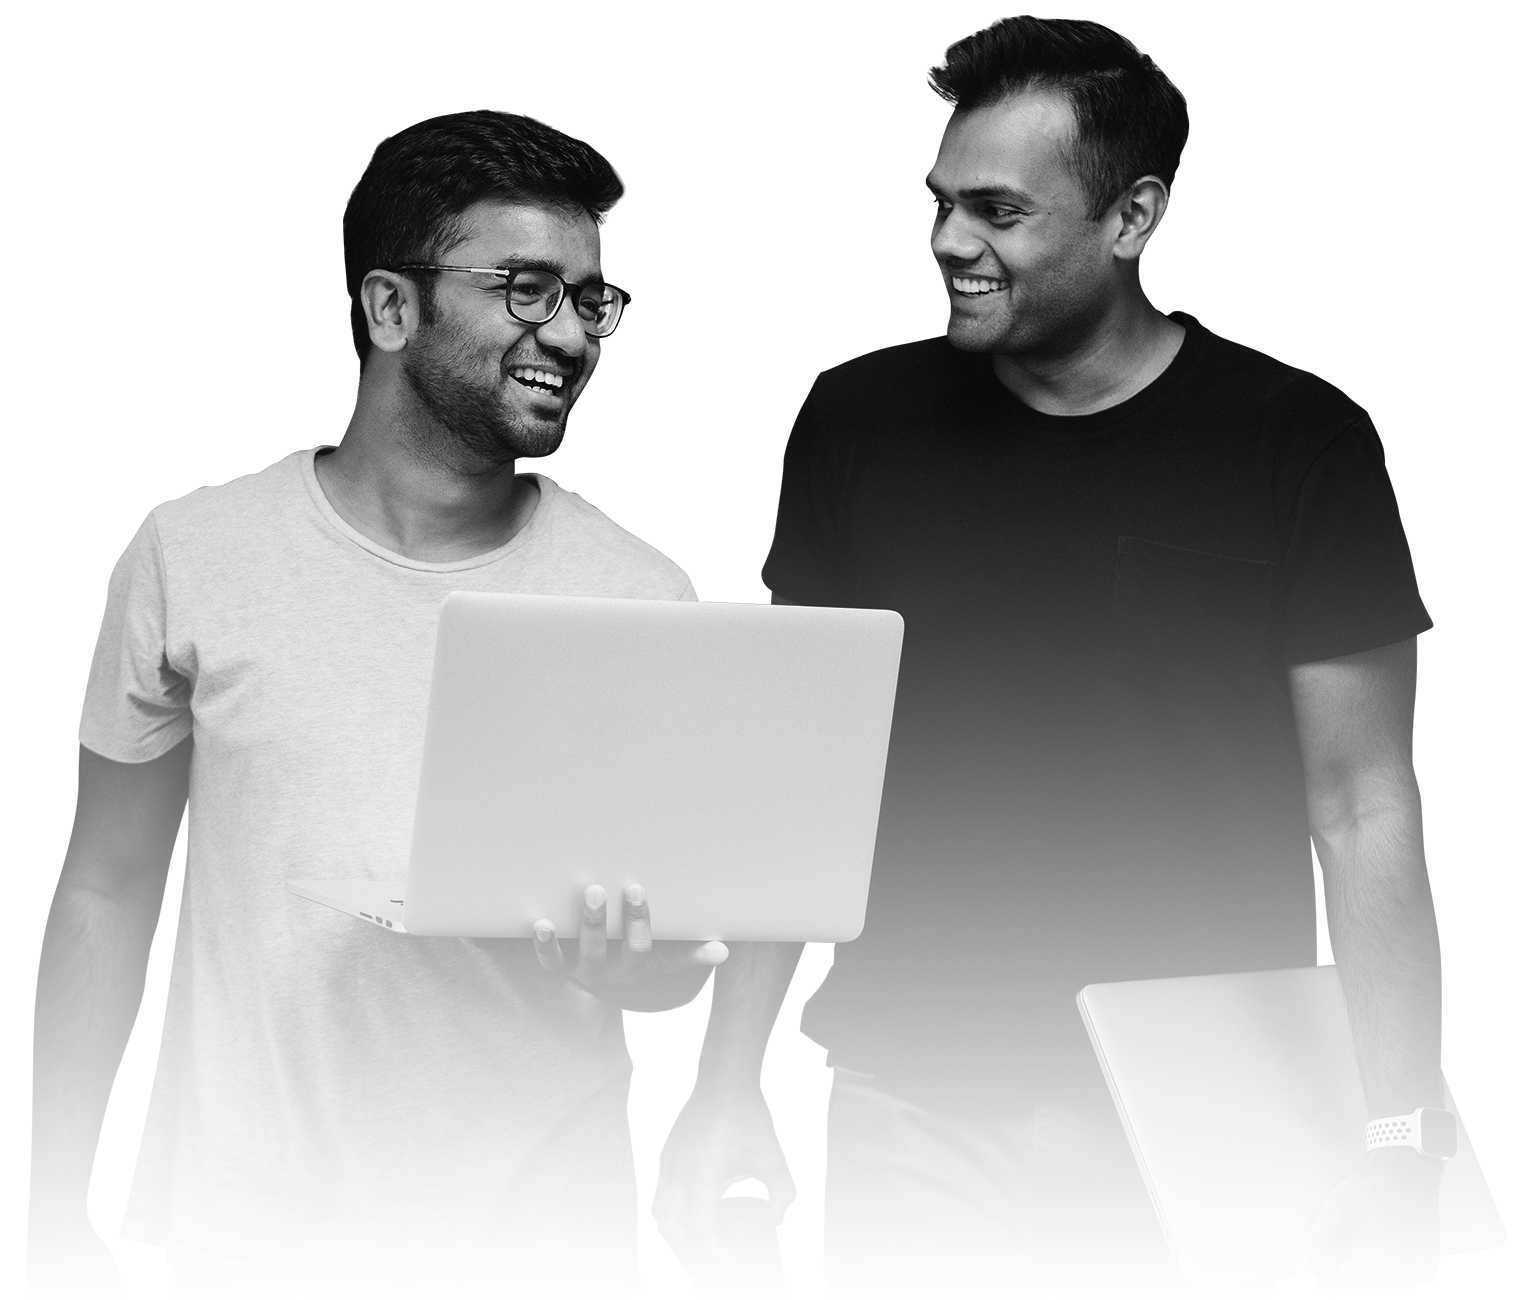 Two Indian young men holding a laptop computer and smiling